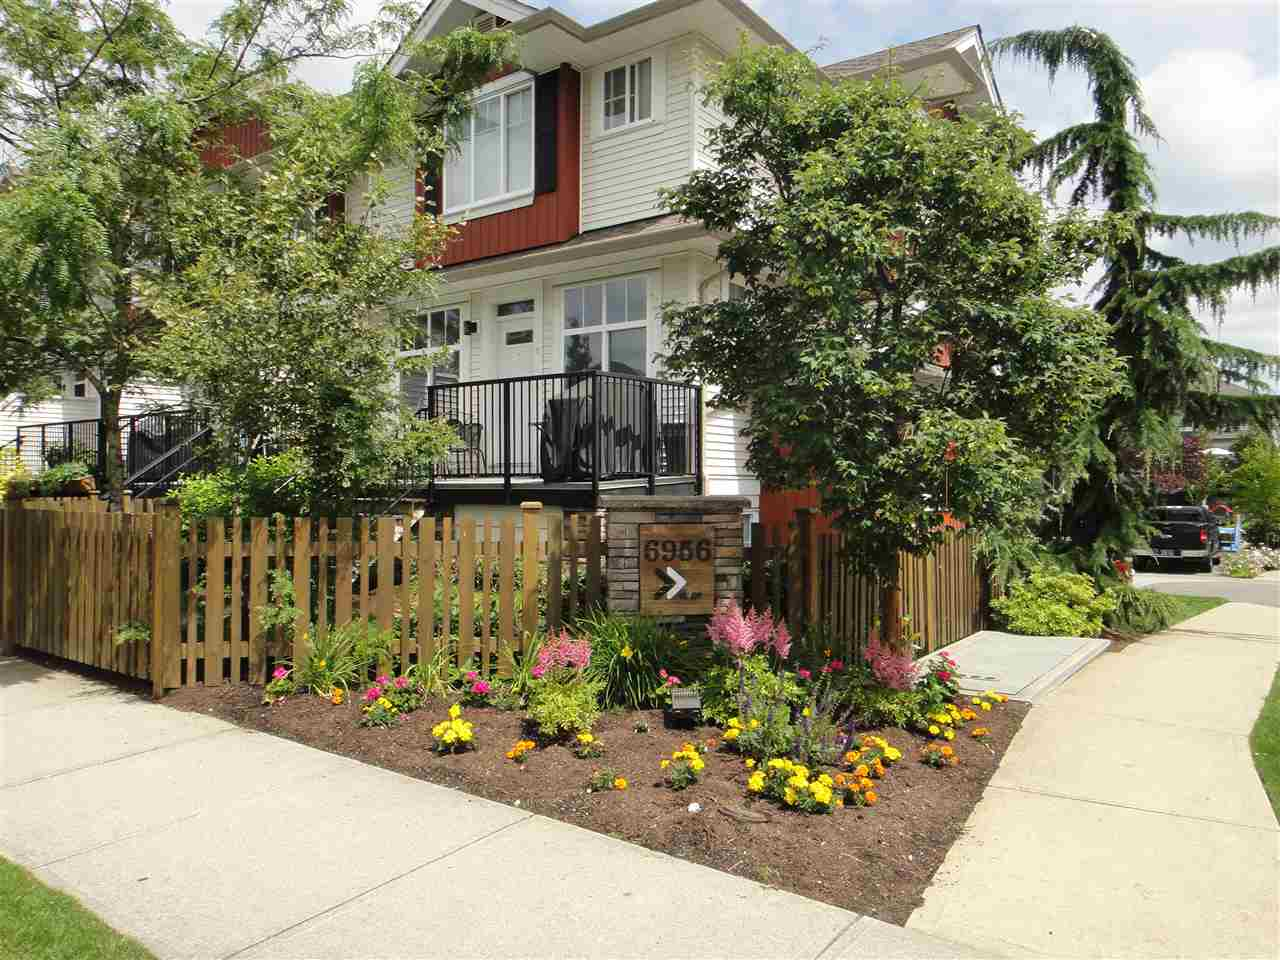 Main Photo: 67 6956 193 STREET in Surrey: Clayton Townhouse for sale (Cloverdale)  : MLS® # R2087455